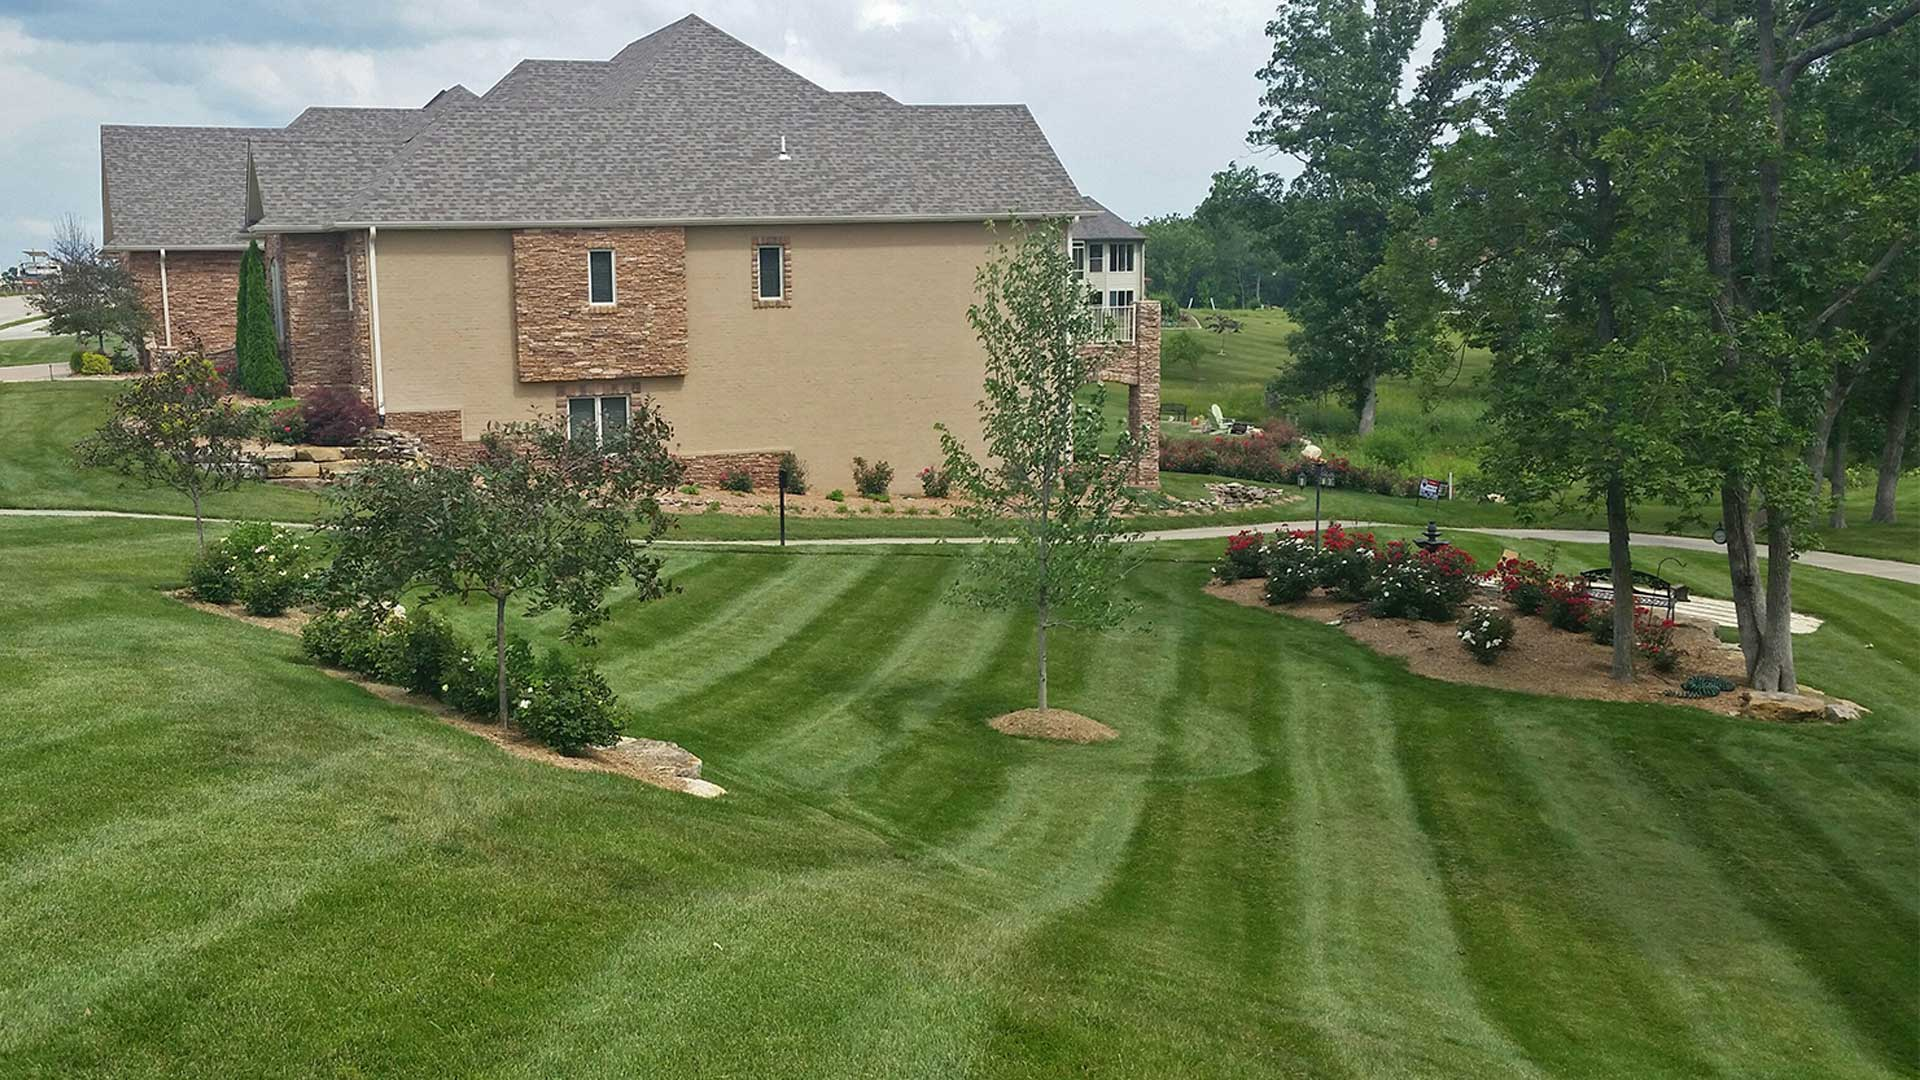 Well maintained lawn and landscaping at residential property.